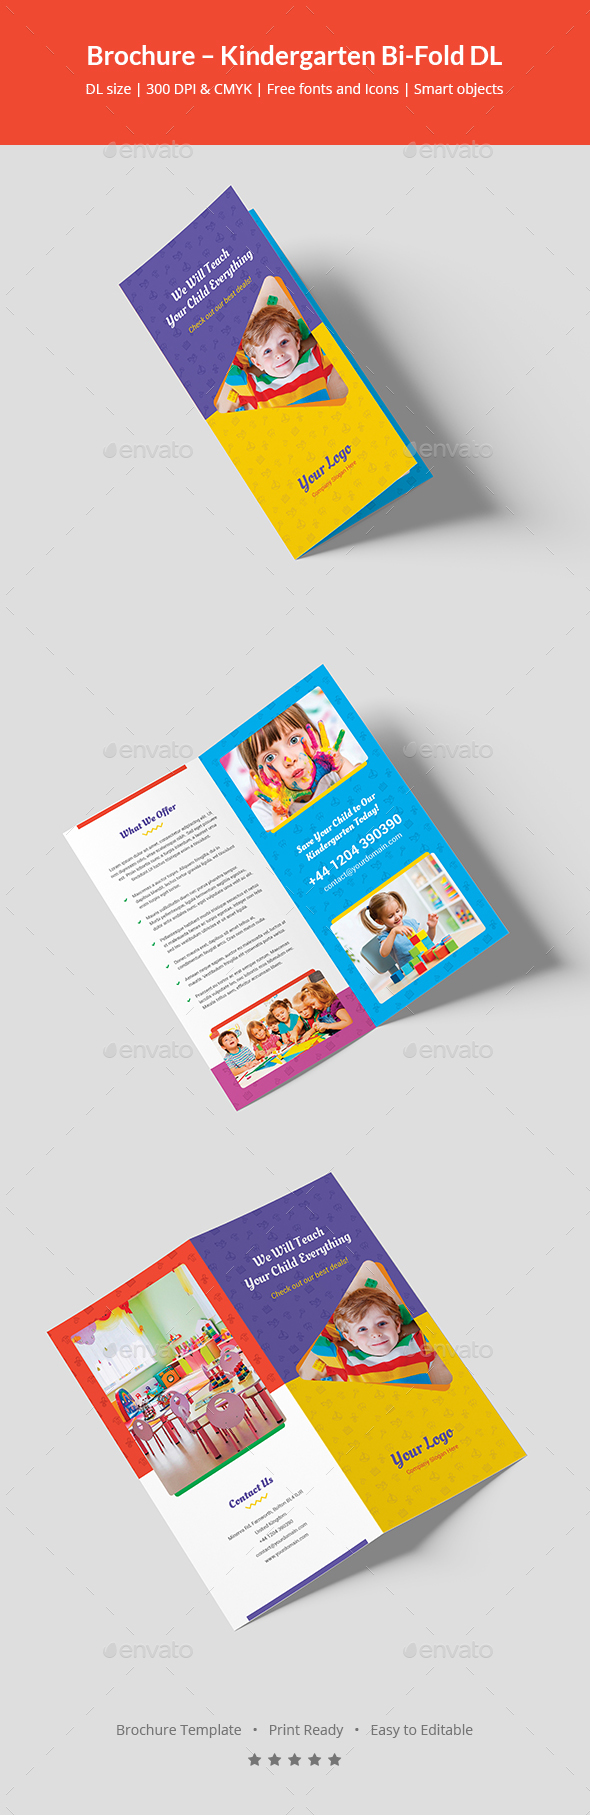 GraphicRiver Brochure Kindergarten Bi-Fold DL 21027735